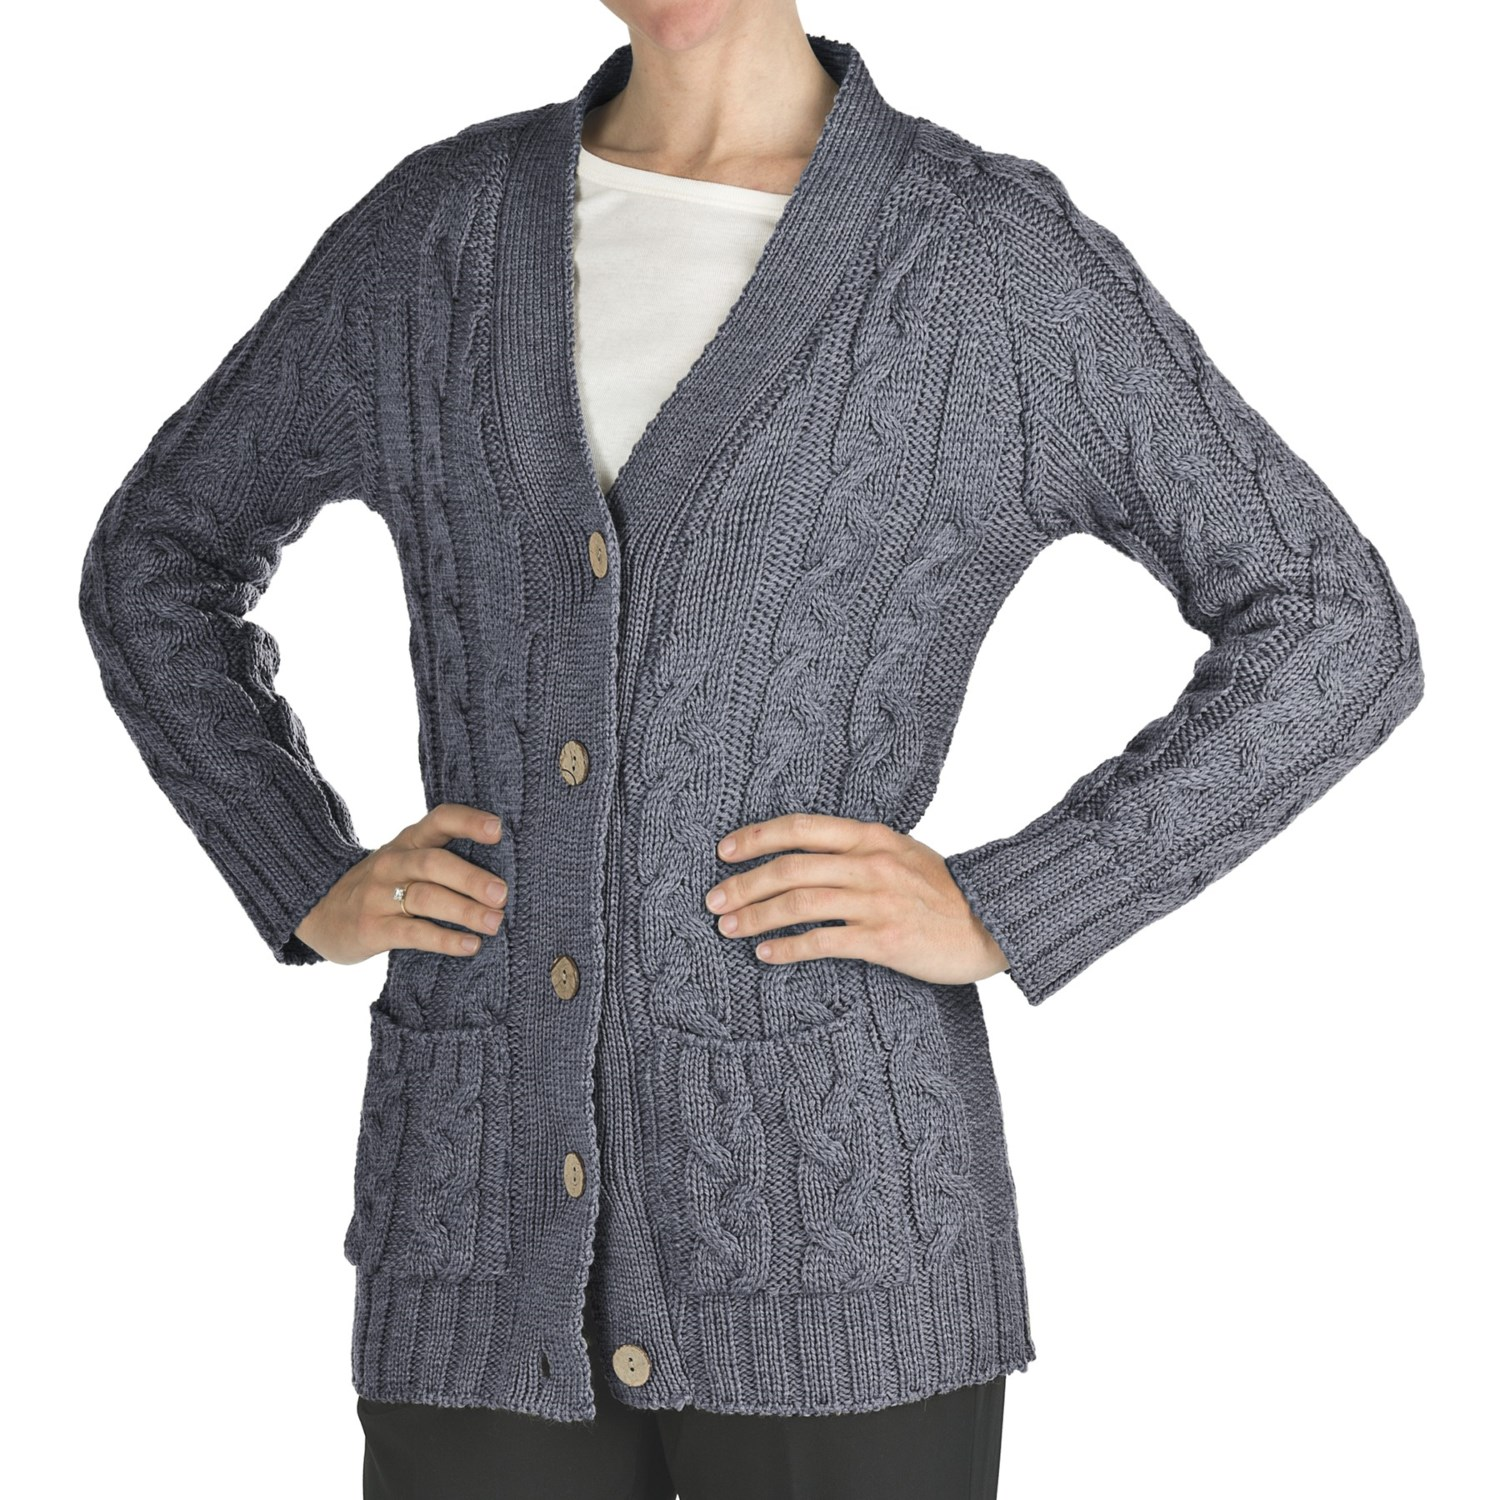 Australia Wool Sweaters - Cardigan With Buttons